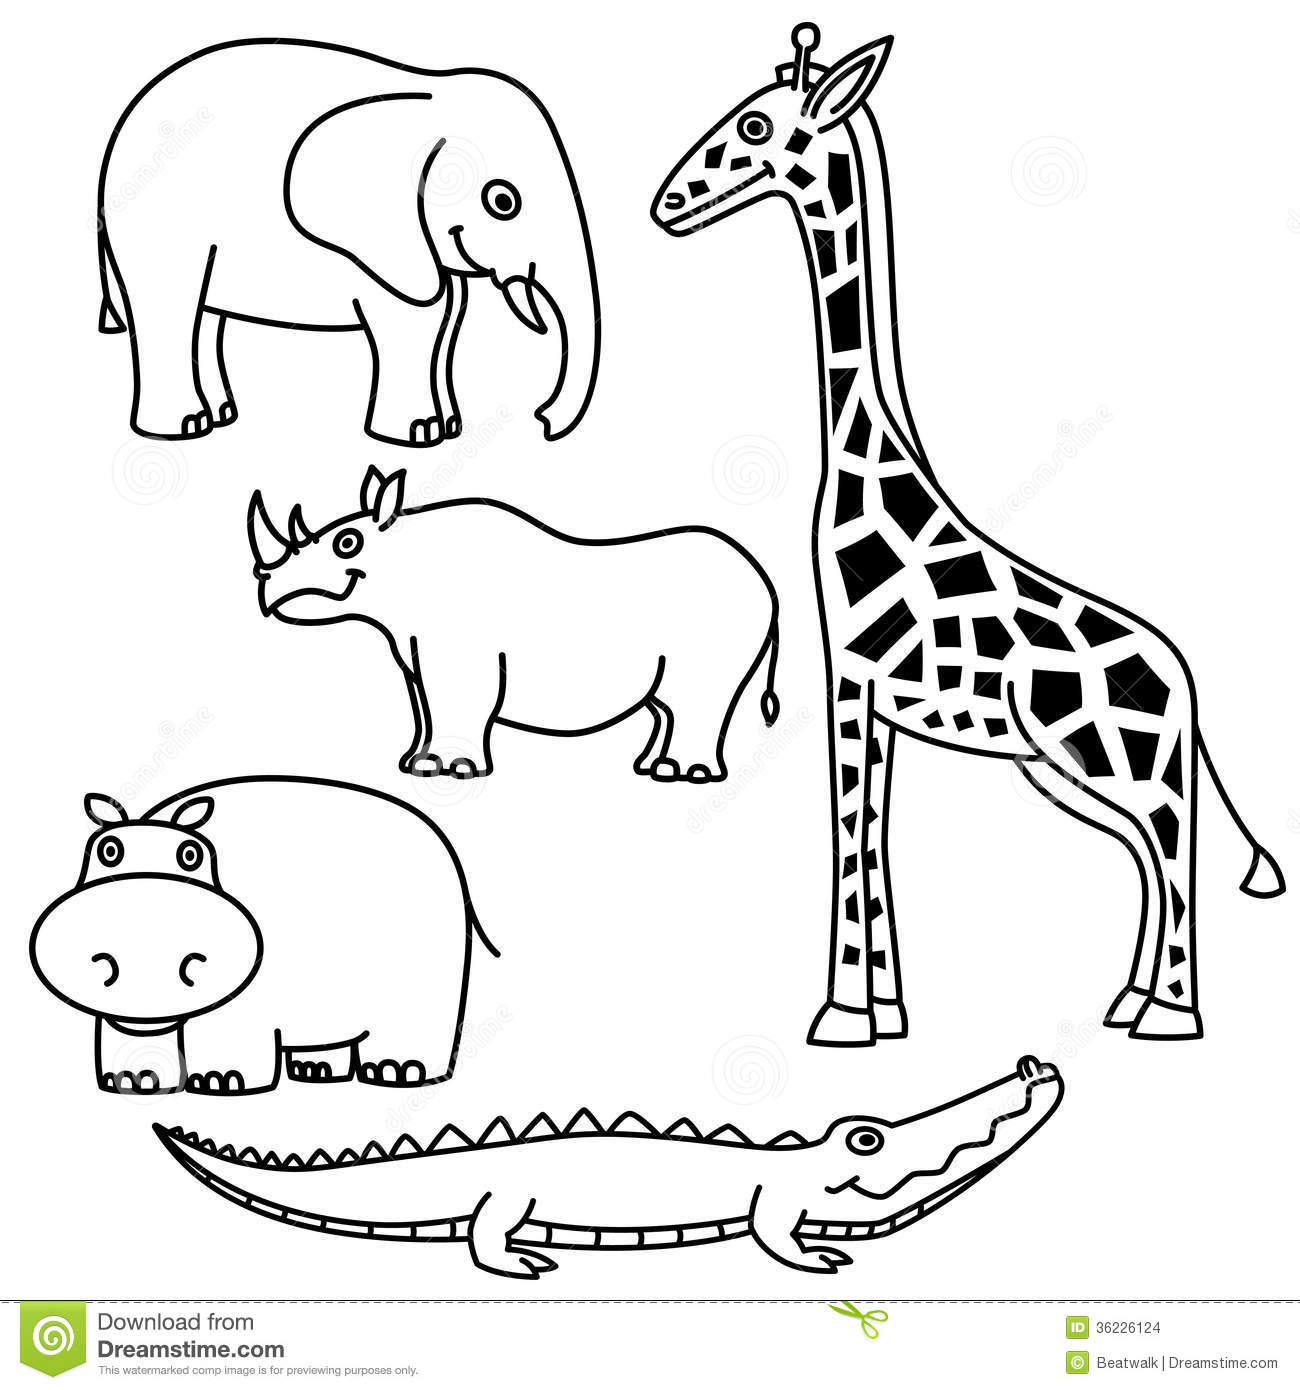 Animal outlines clipart 5 » Clipart Station.